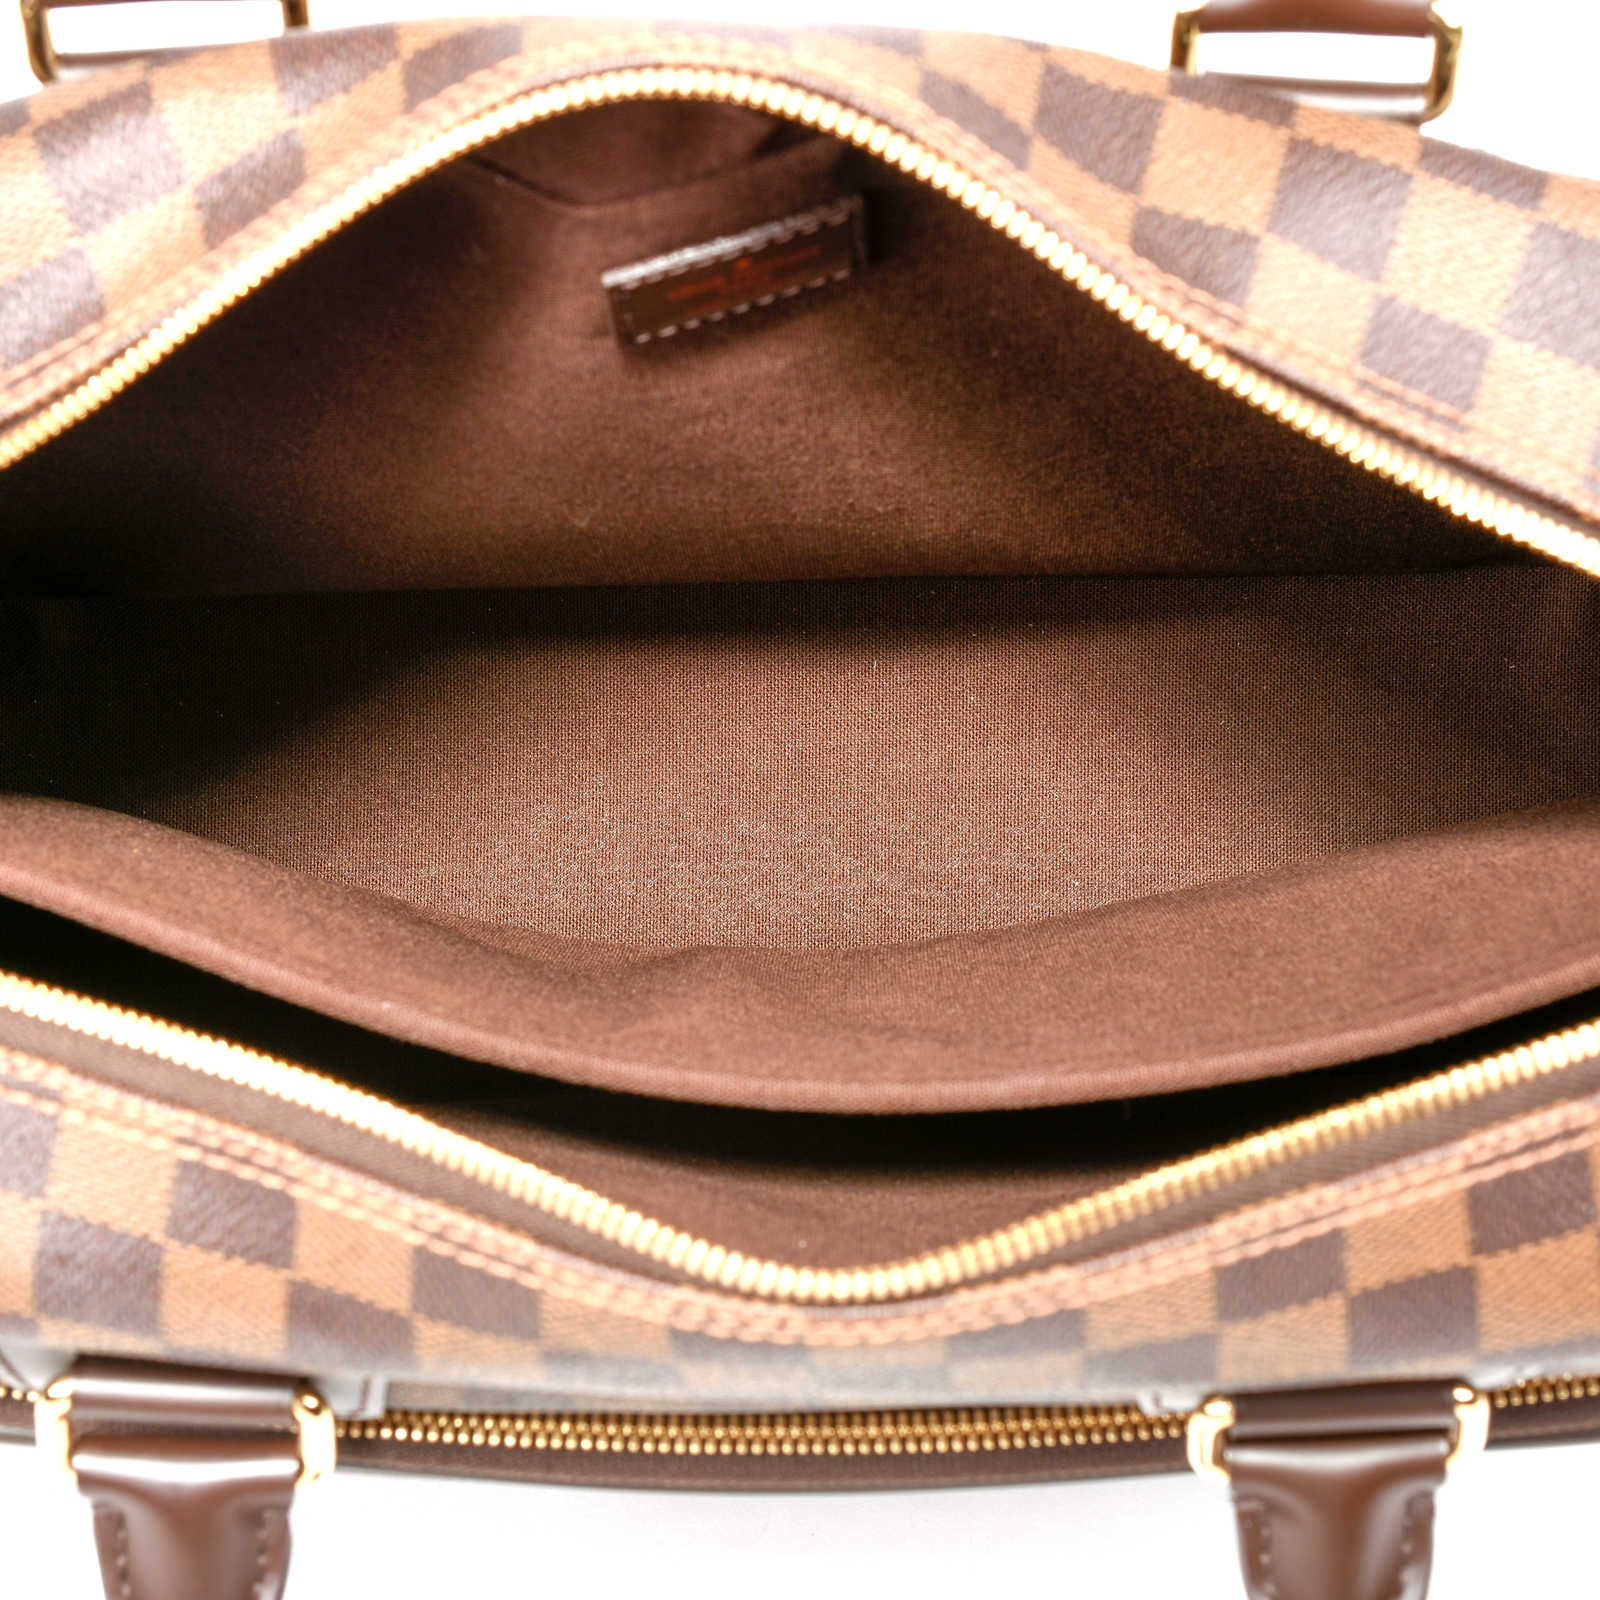 992bc627973 ... Authentic Second Hand Louis Vuitton Icare Laptop Bag (PSS-071-00177) ...